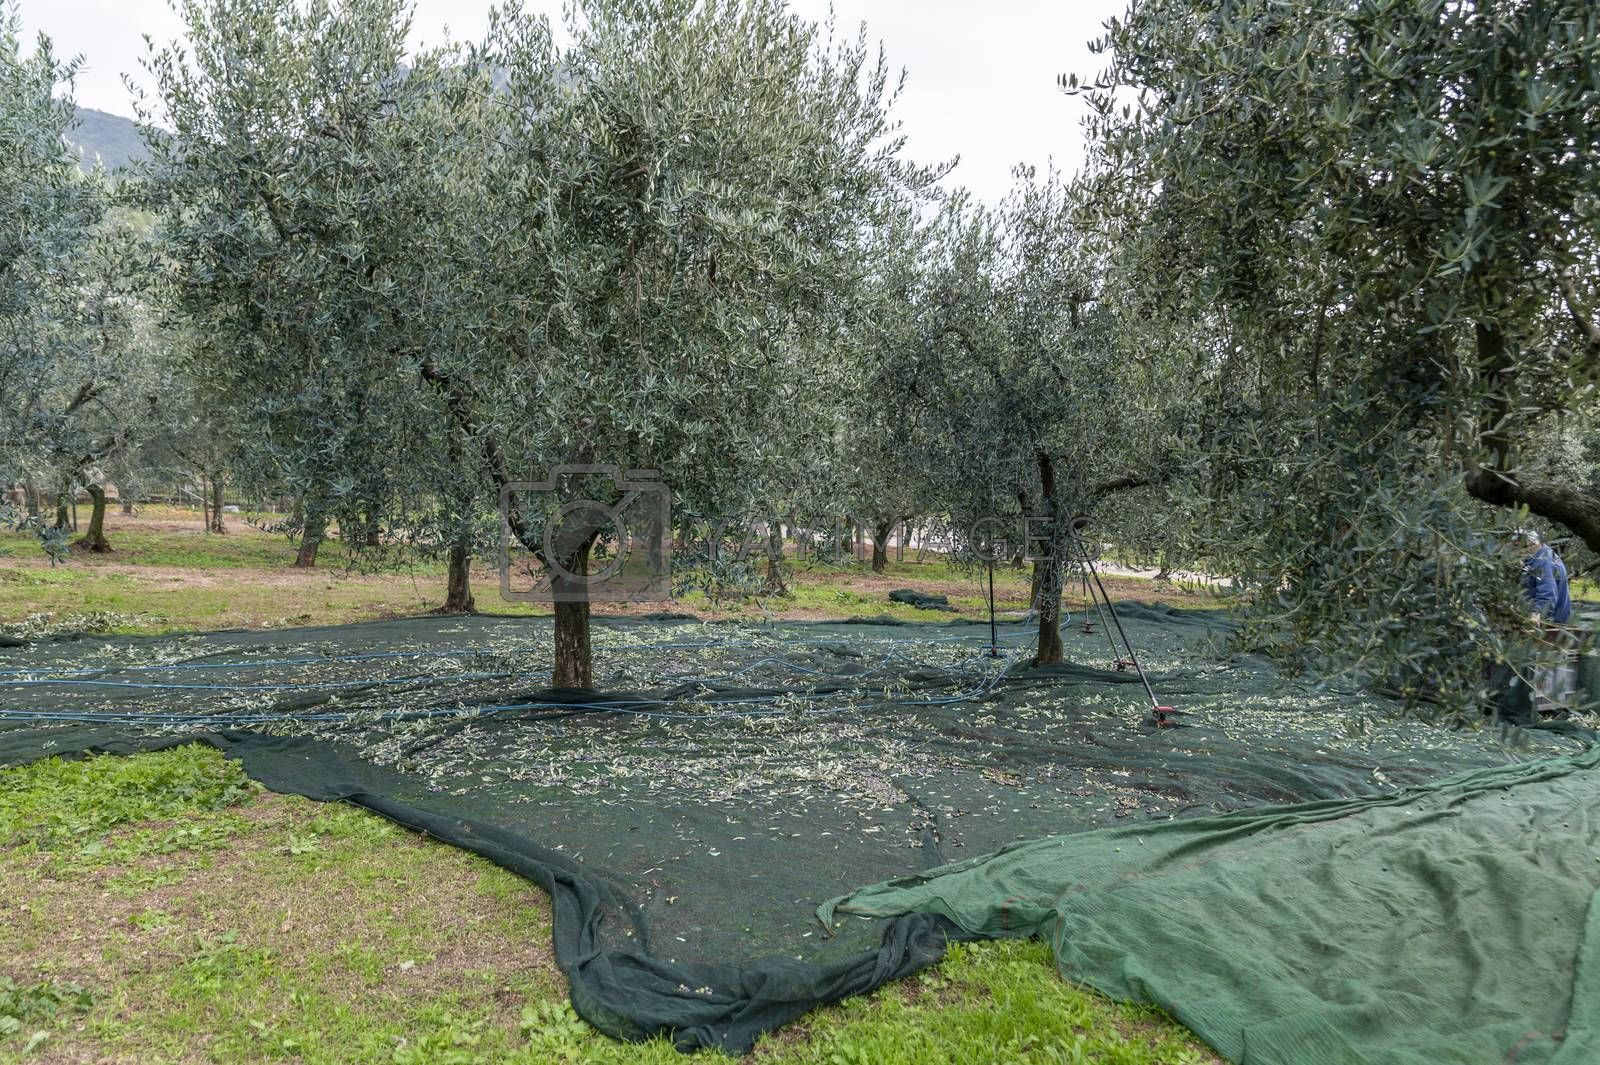 cloths positioned for olive harvesting under the trees